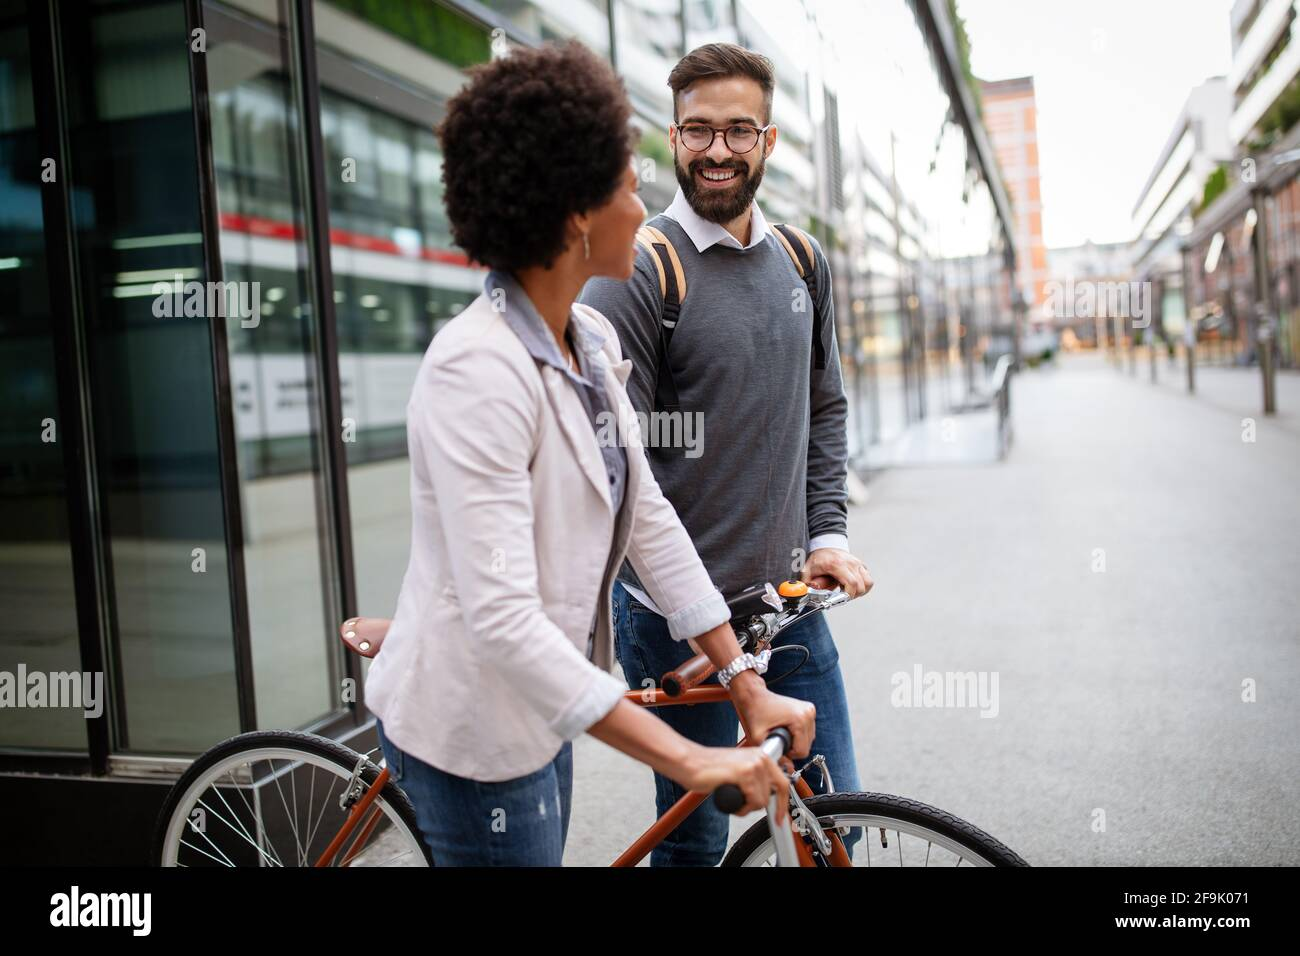 Young couple having fun in the city and ride a bicycle Stock Photo